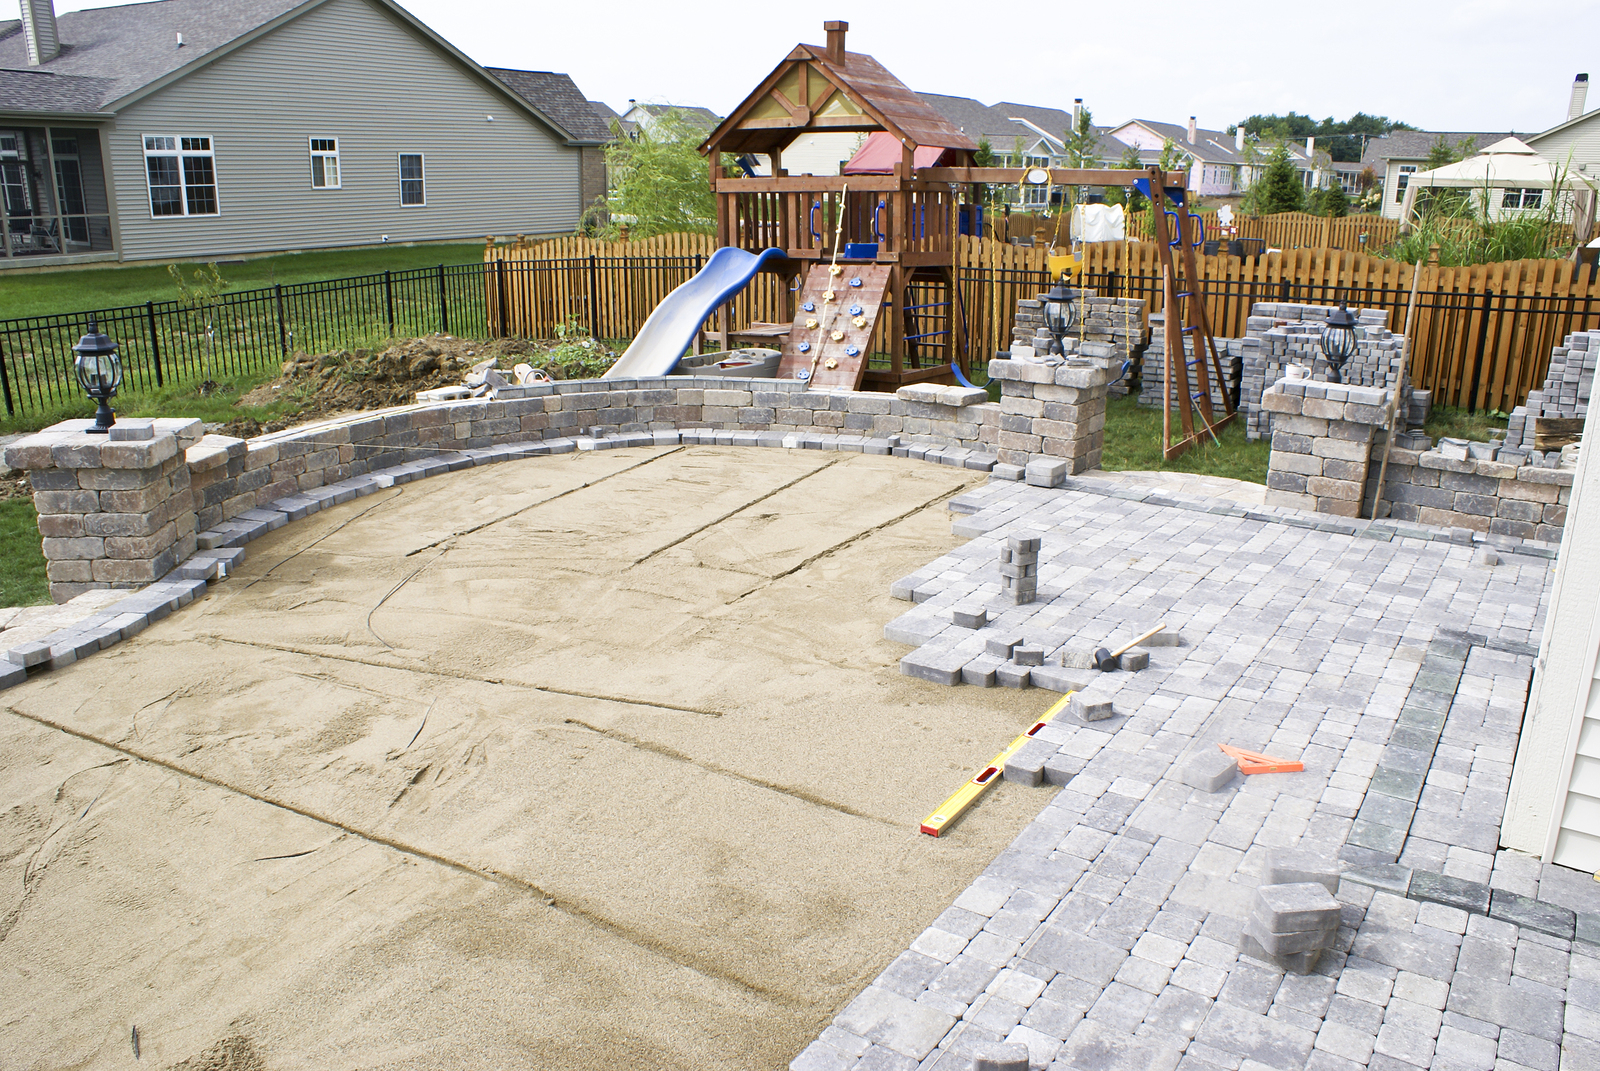 Backyard Pavers Plans Home Ideas Utilizing Backyard Pavers For intended for Backyard Paving Ideas